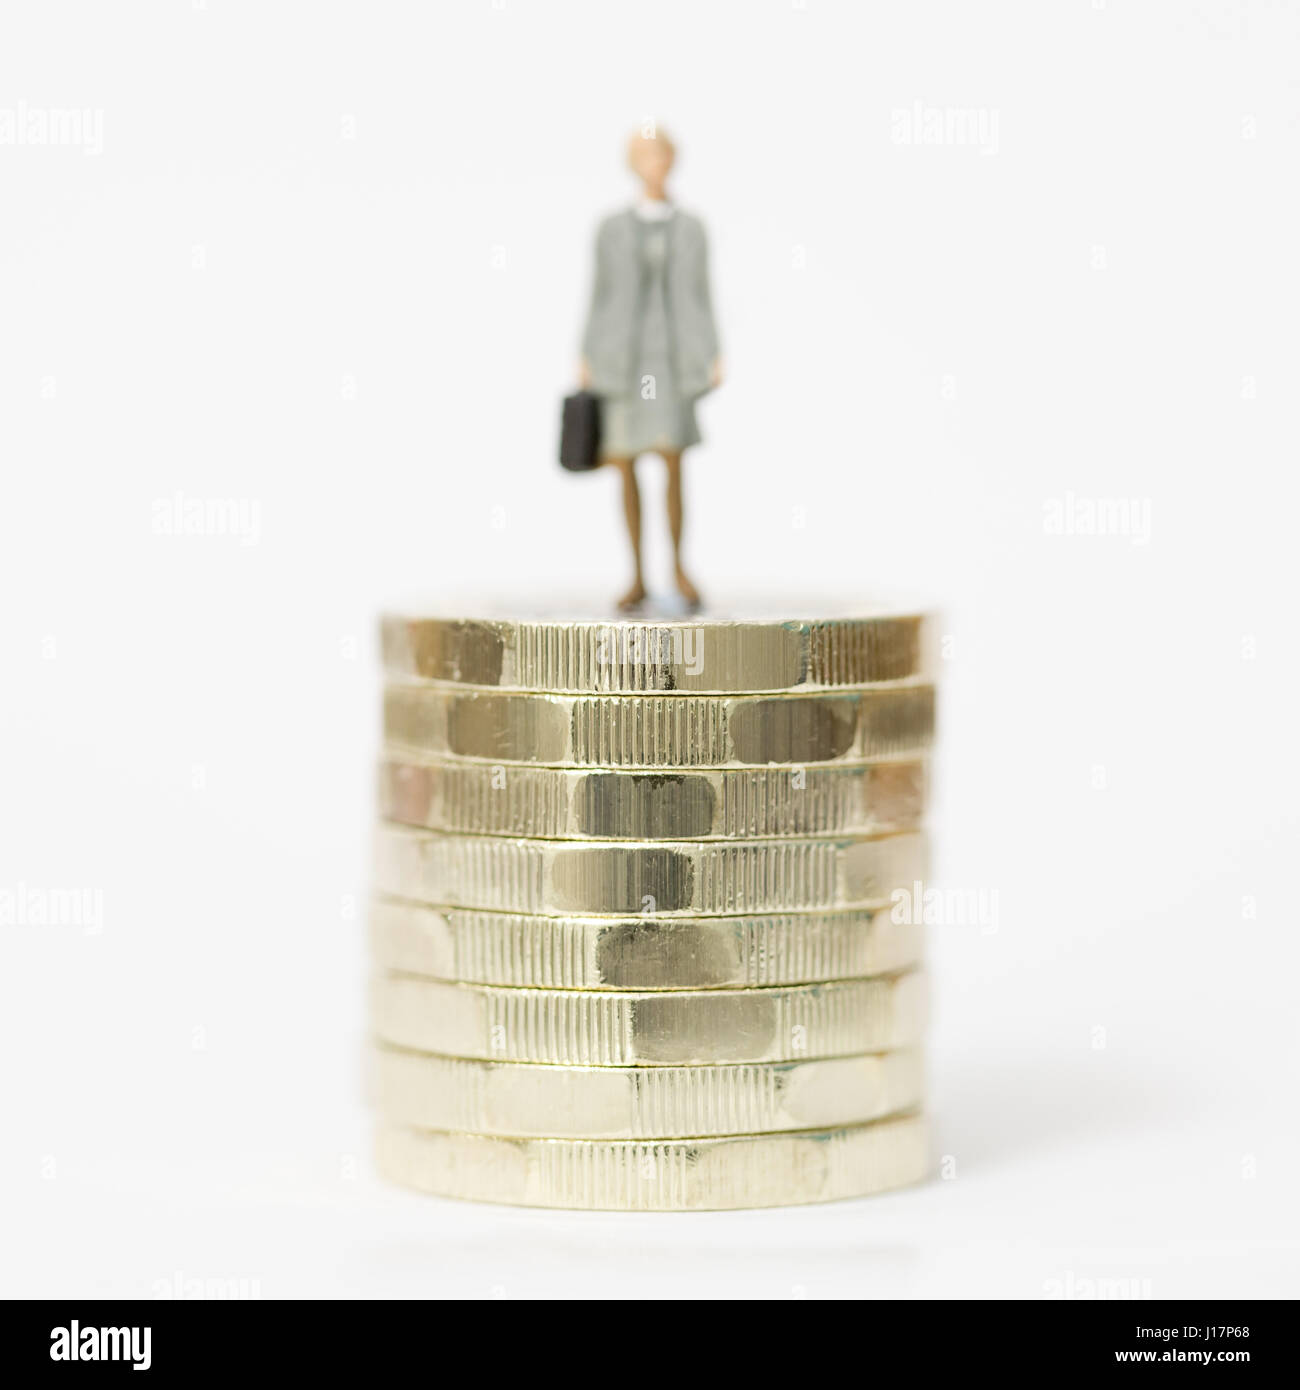 Close up/macro model stock photo depicting female wage worker on stack of new British pound coins. - Stock Image